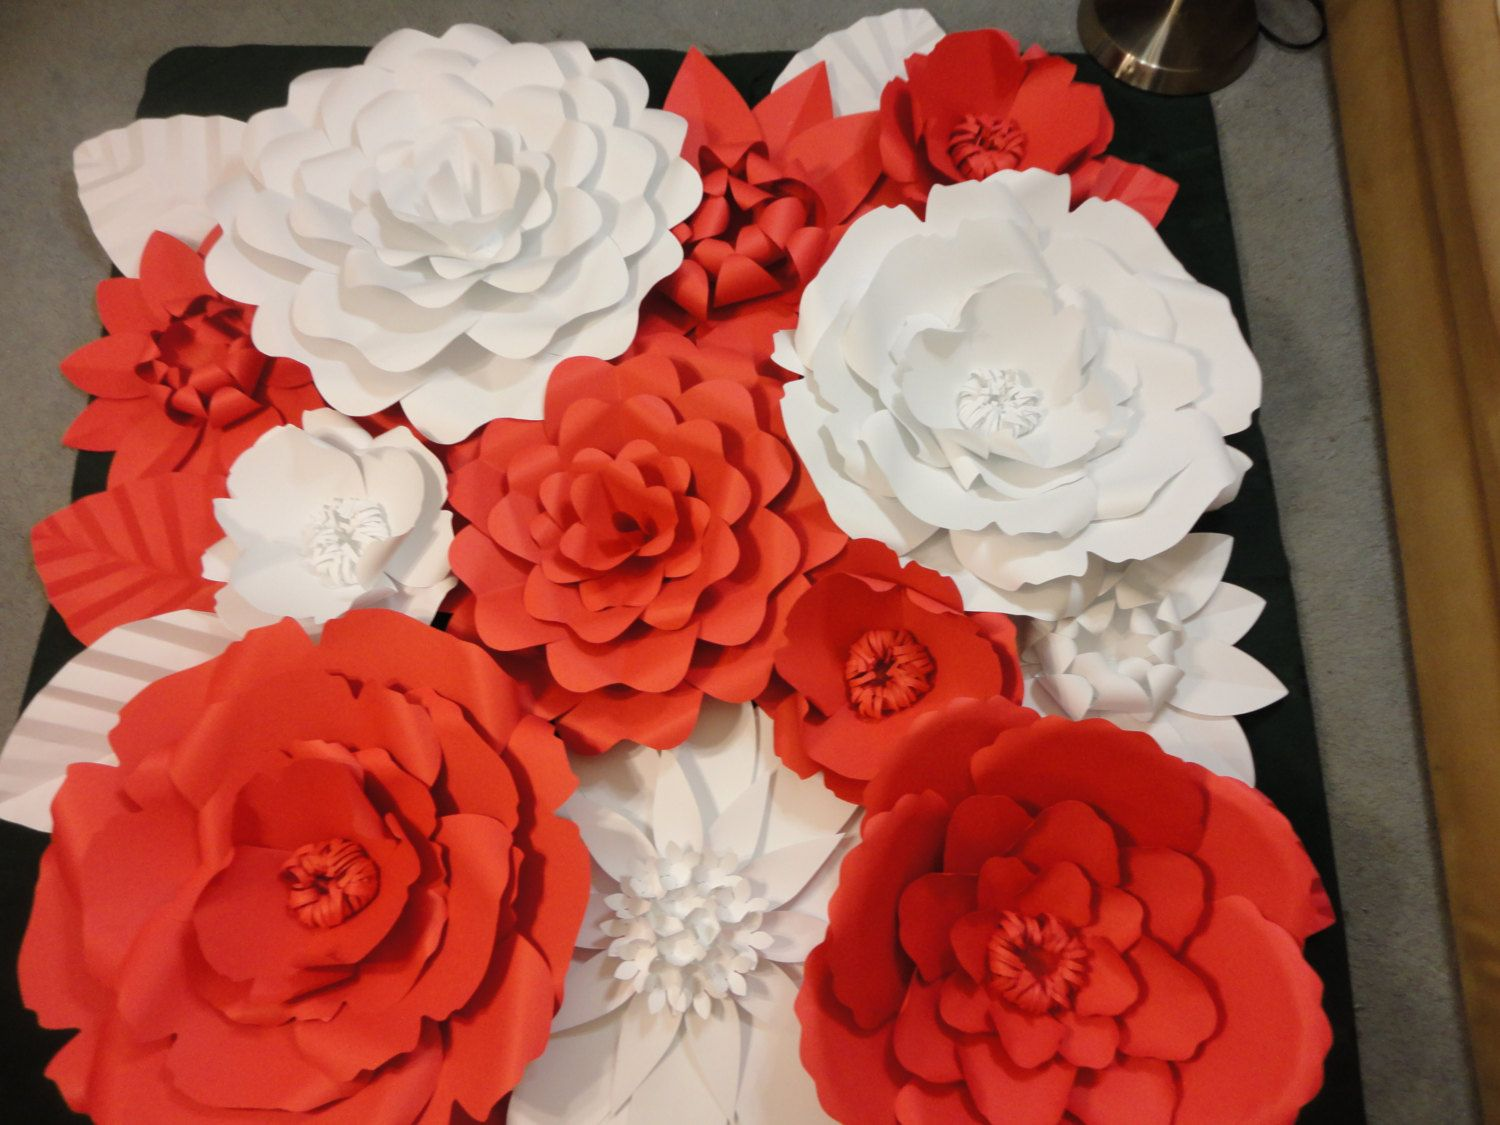 Red Paper Flower Wall 5 Ft X 5 Ft Extra Large Paper Poshstudios